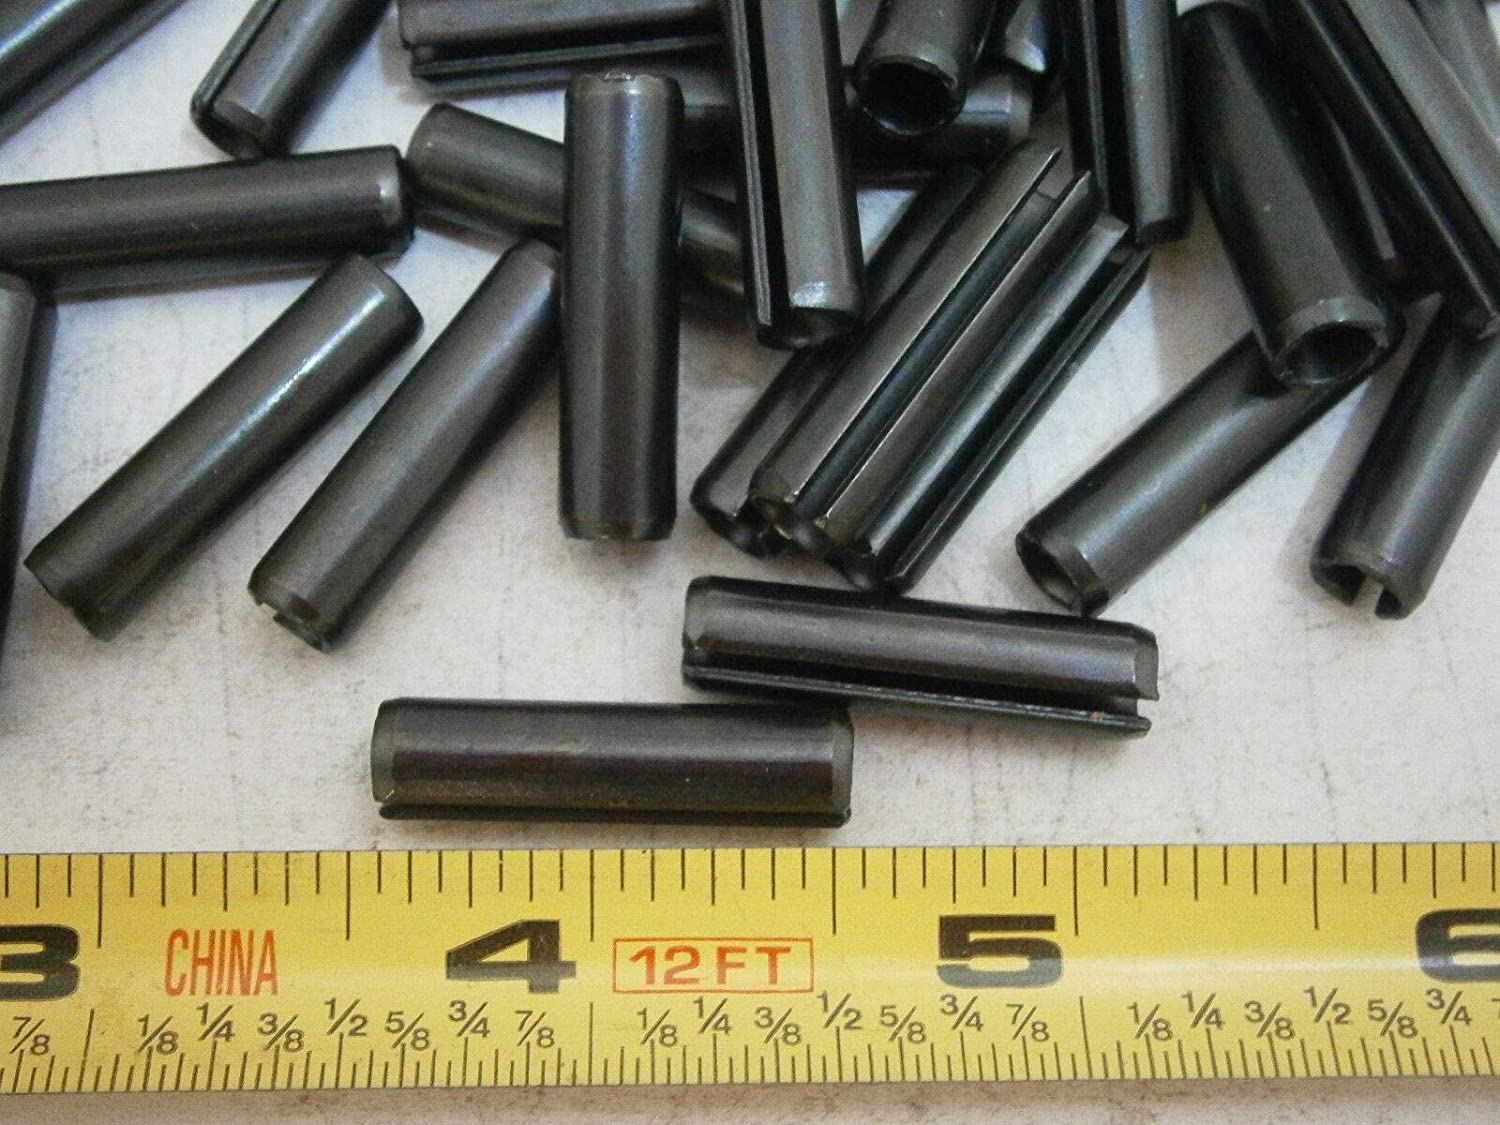 Spring Pins 1//4 OD x 1 Long Alloy Steel Lot of 25#4298 Roll Pins